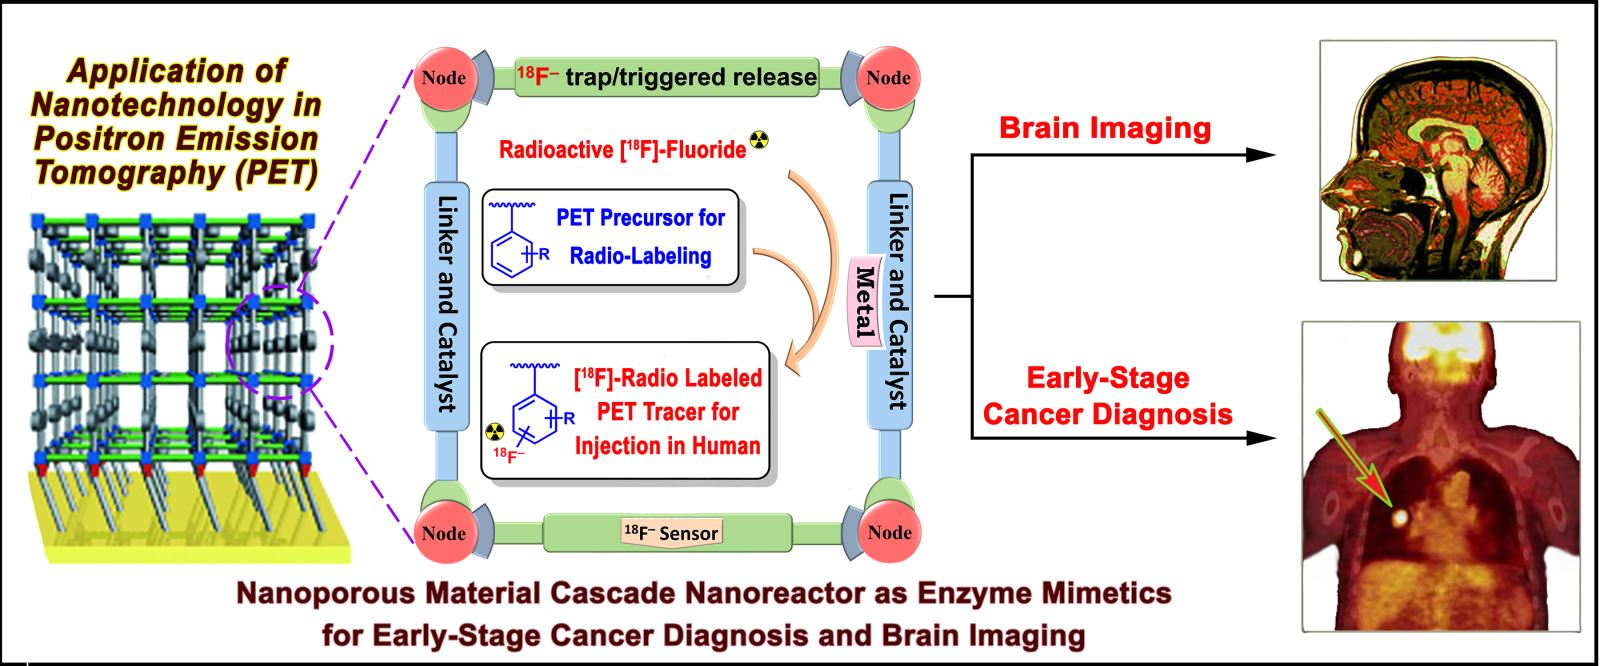 This diagram shows Beyzavi's design for a nanoreactor containing catalysts that can perform the necessary chemical reactions to prepare tracer molecules for use in PET scanning.